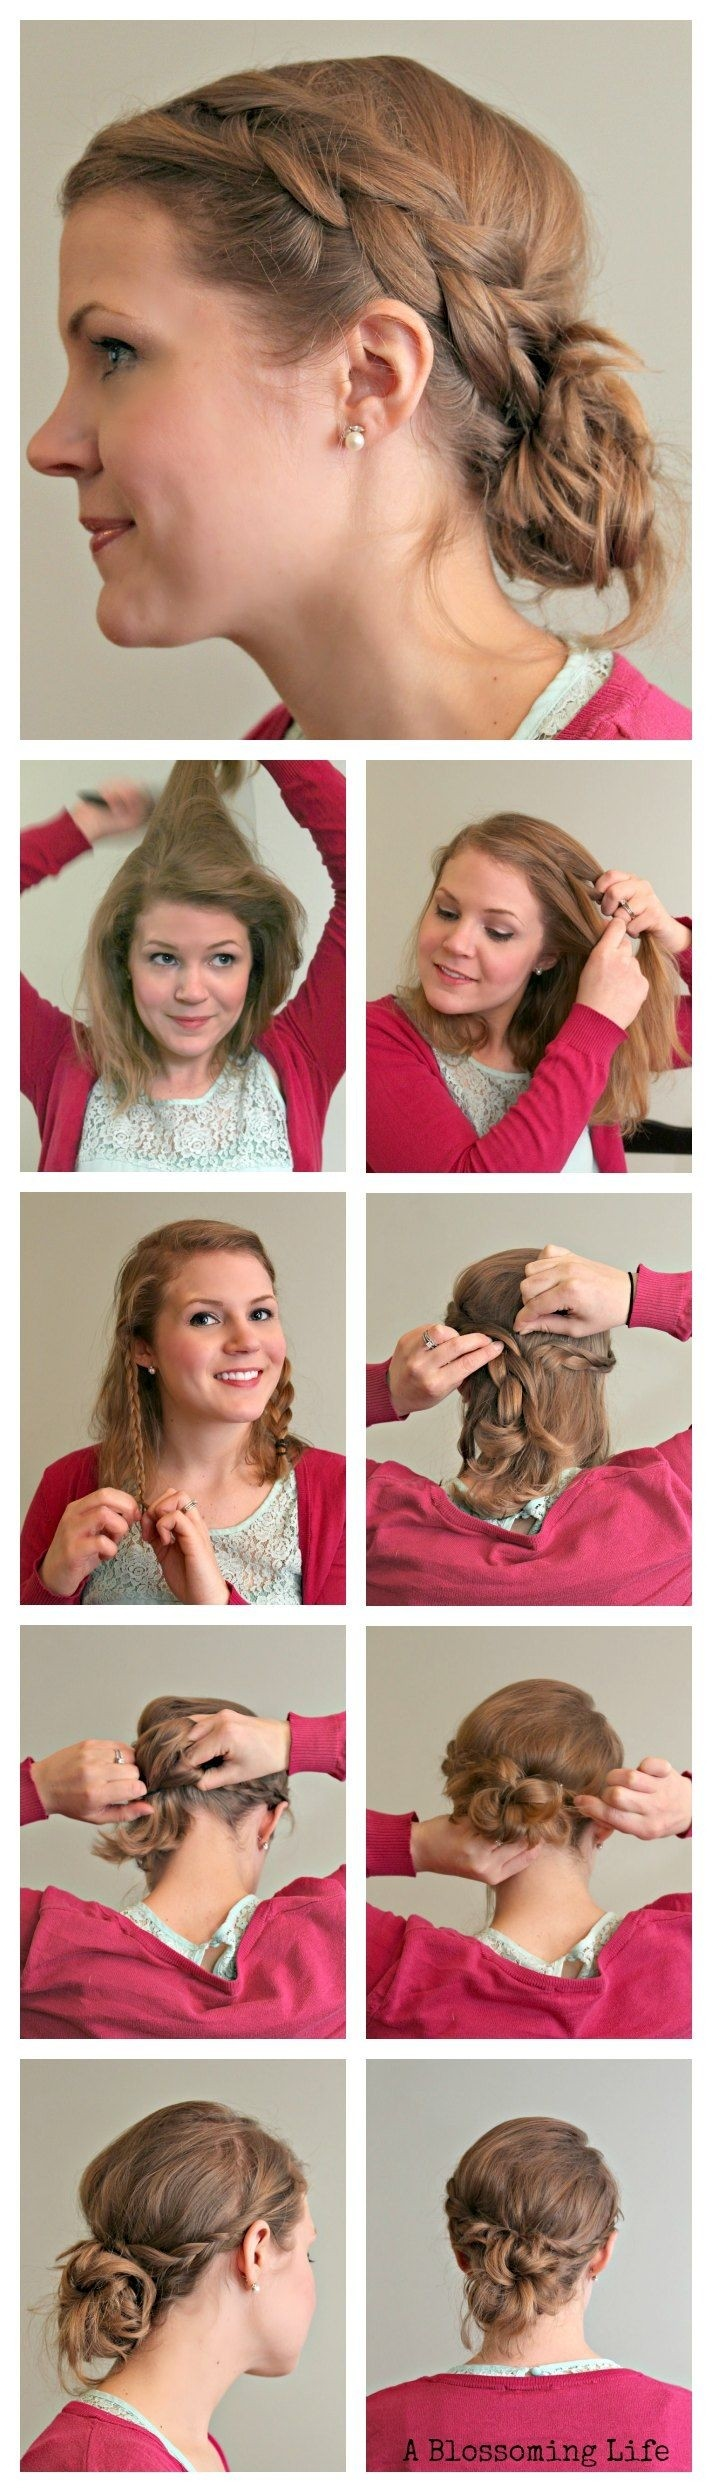 2014 Prom Hairstyles: Loosely Braided Messy Bun Tutorial